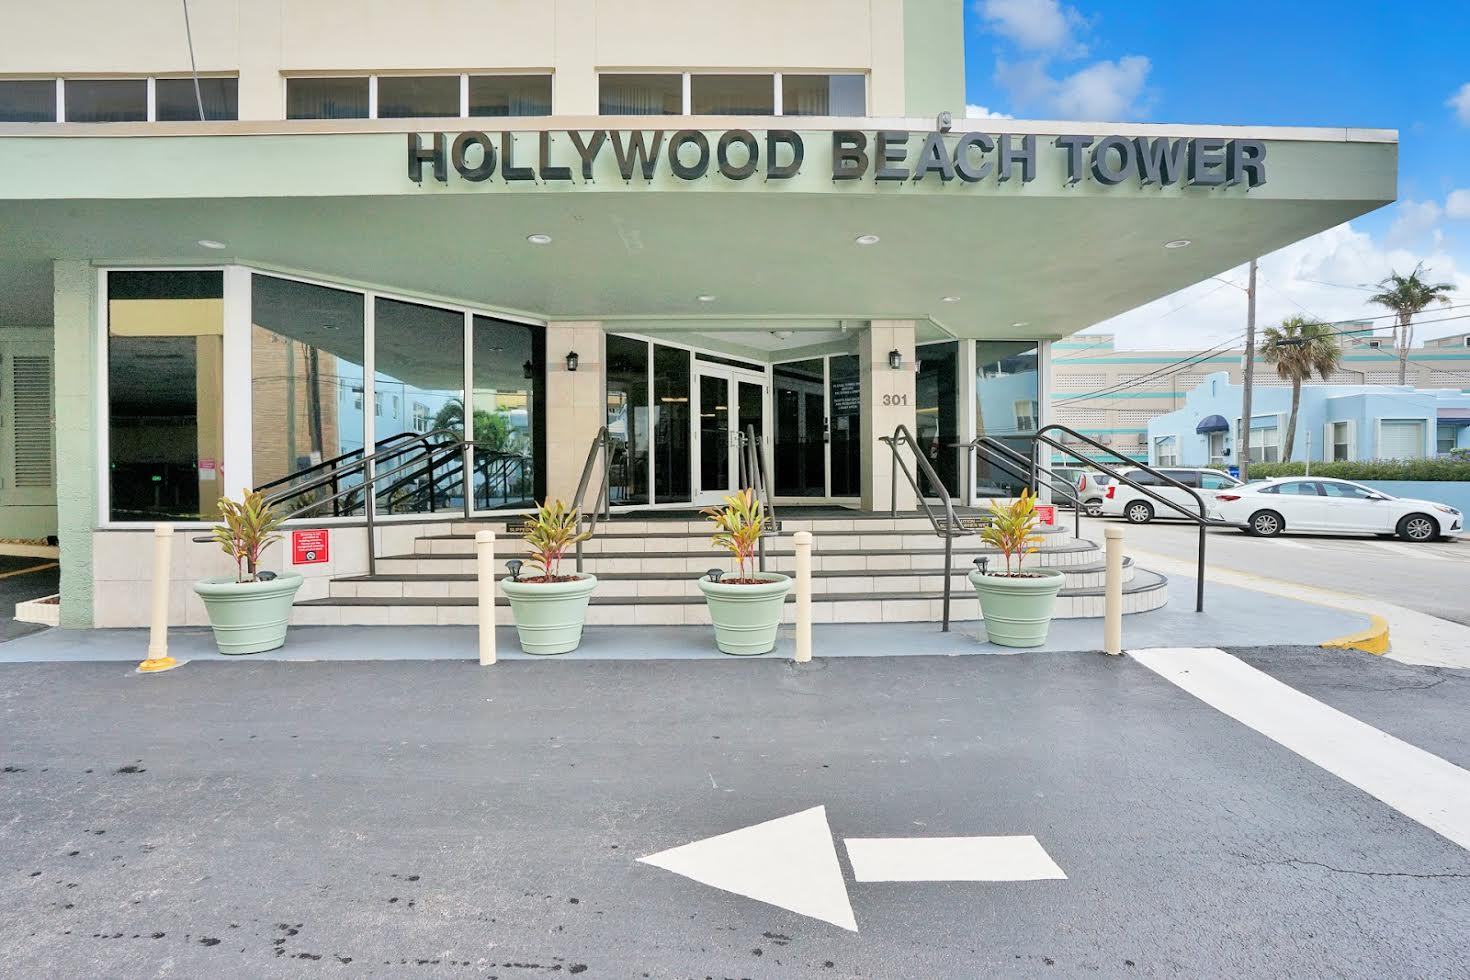 Hollywood Beach Tower Picture Number 2